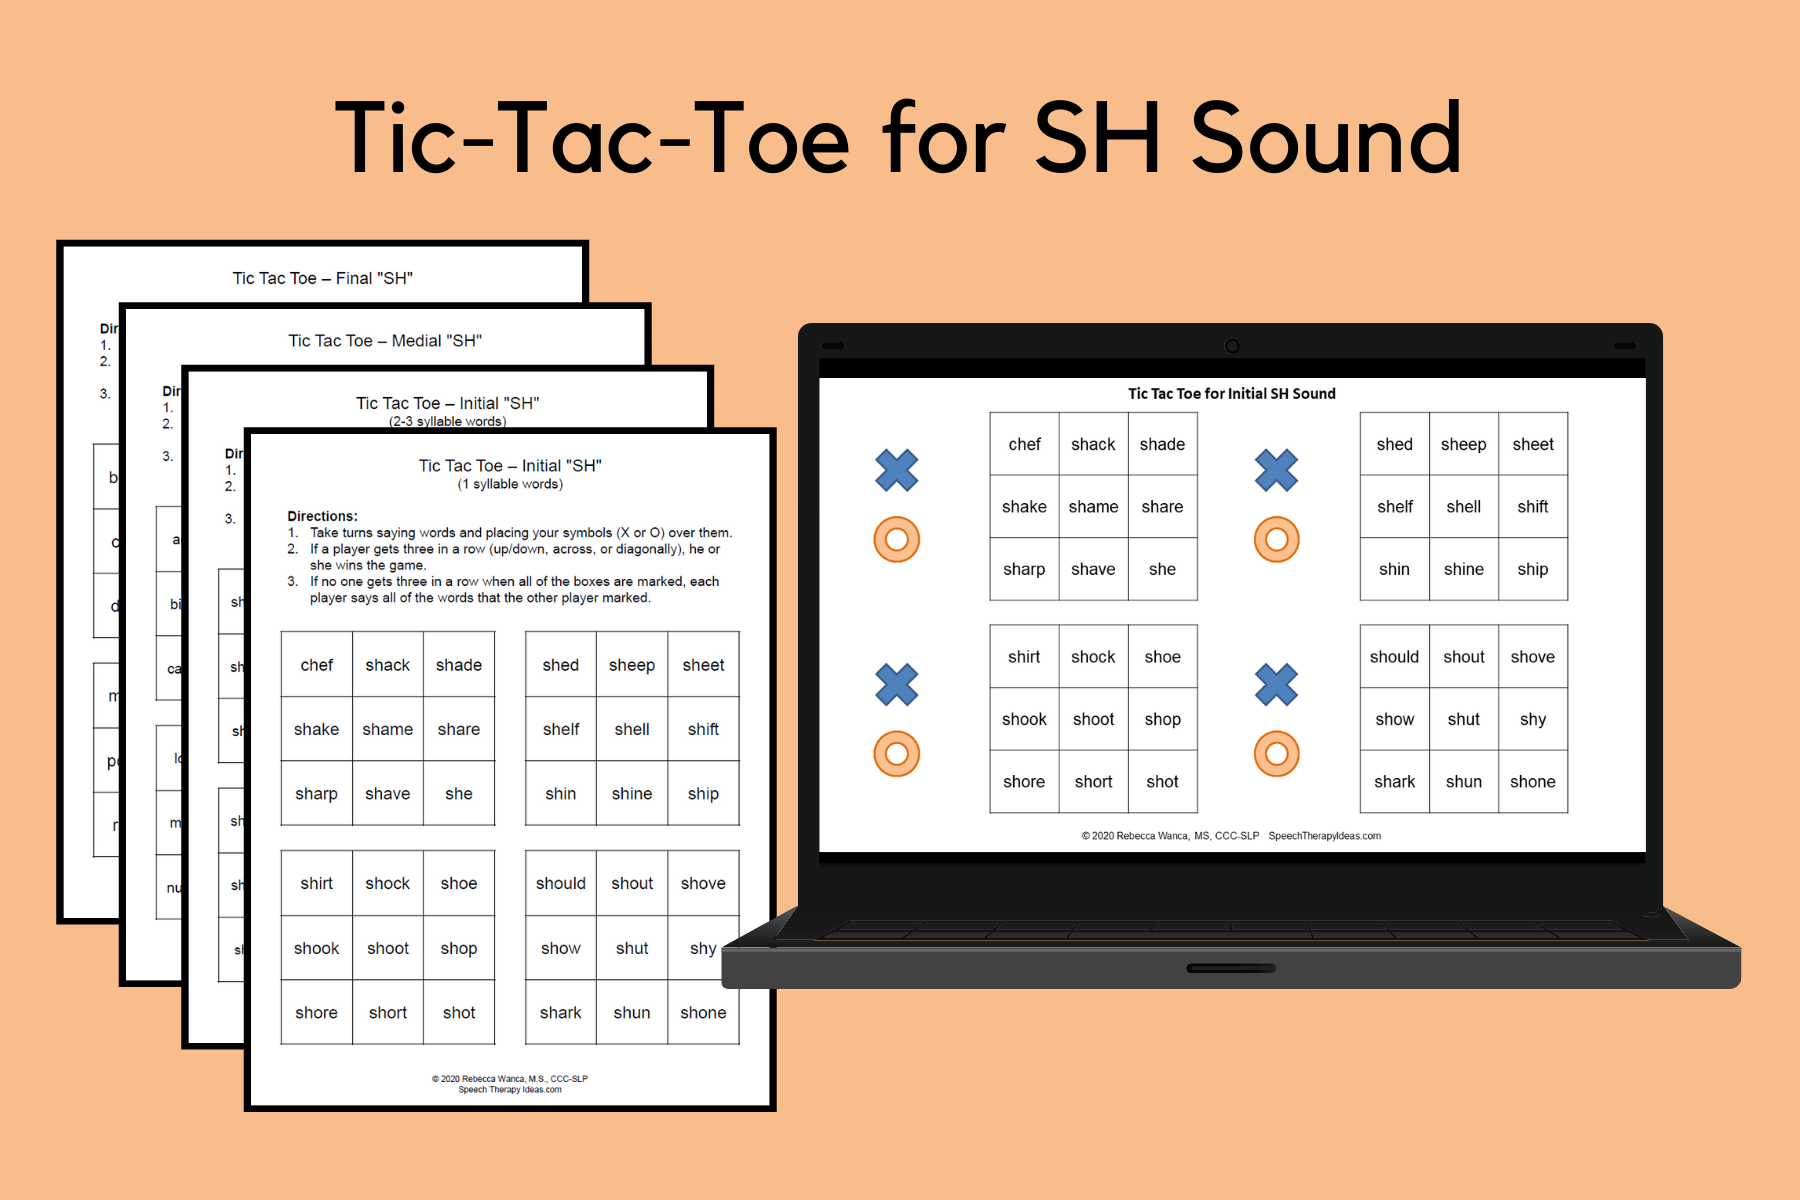 Tic-Tac-Toe Games For SH Sound